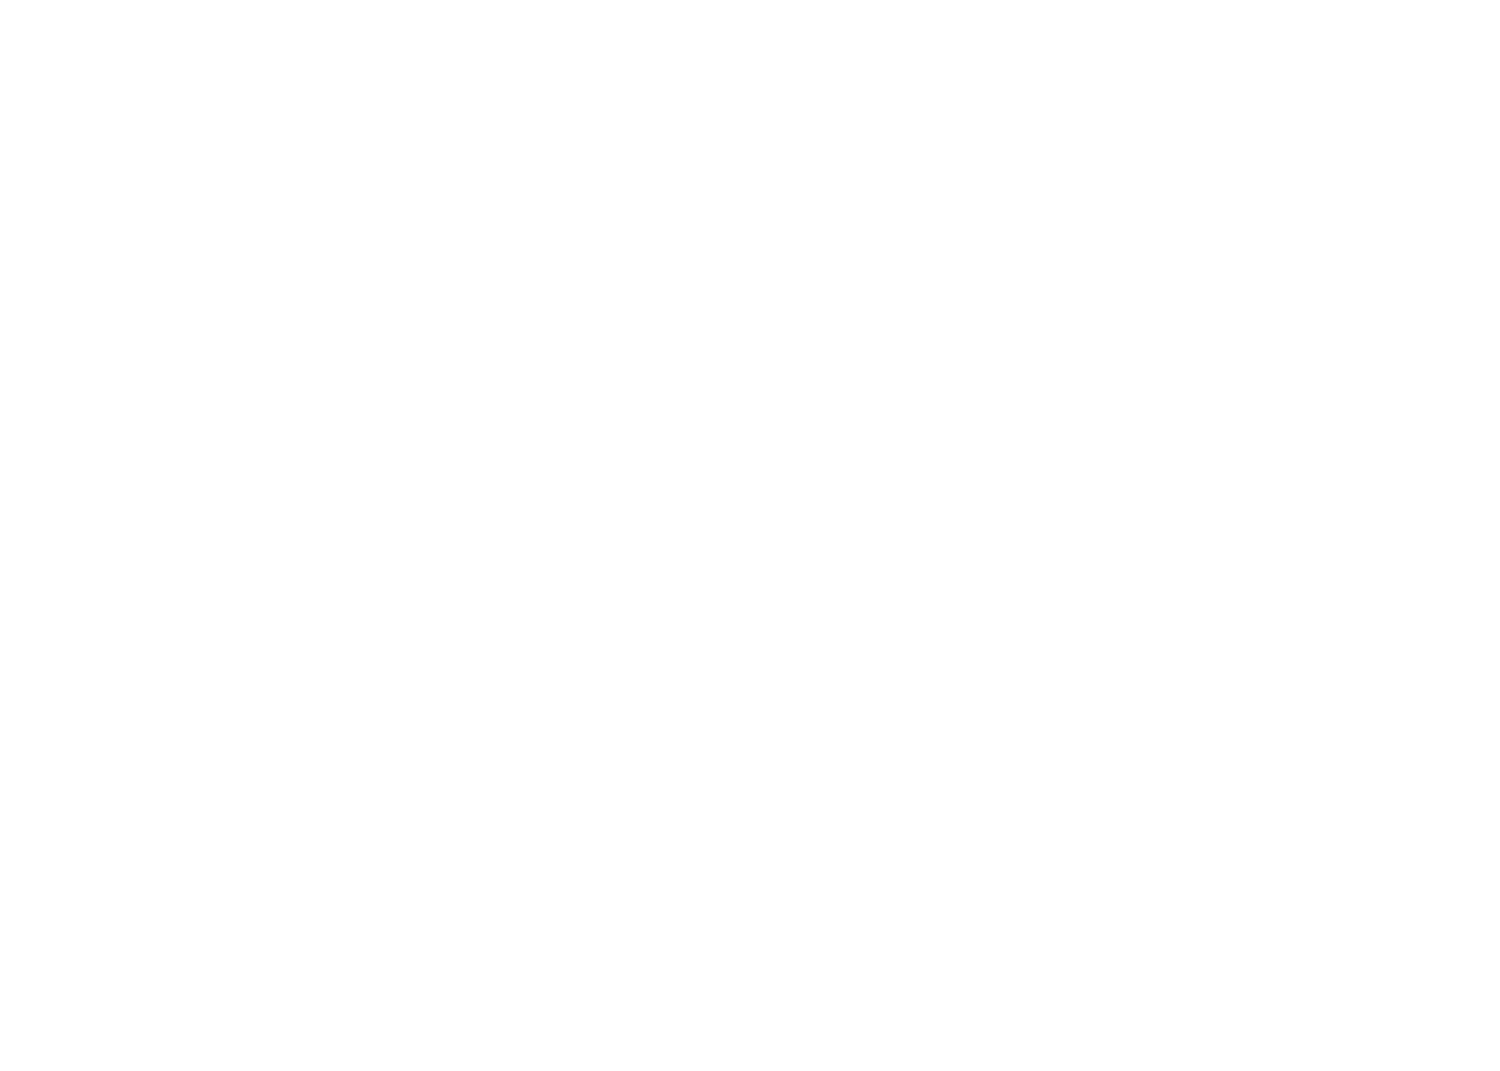 SCIOTO ANALYSIS